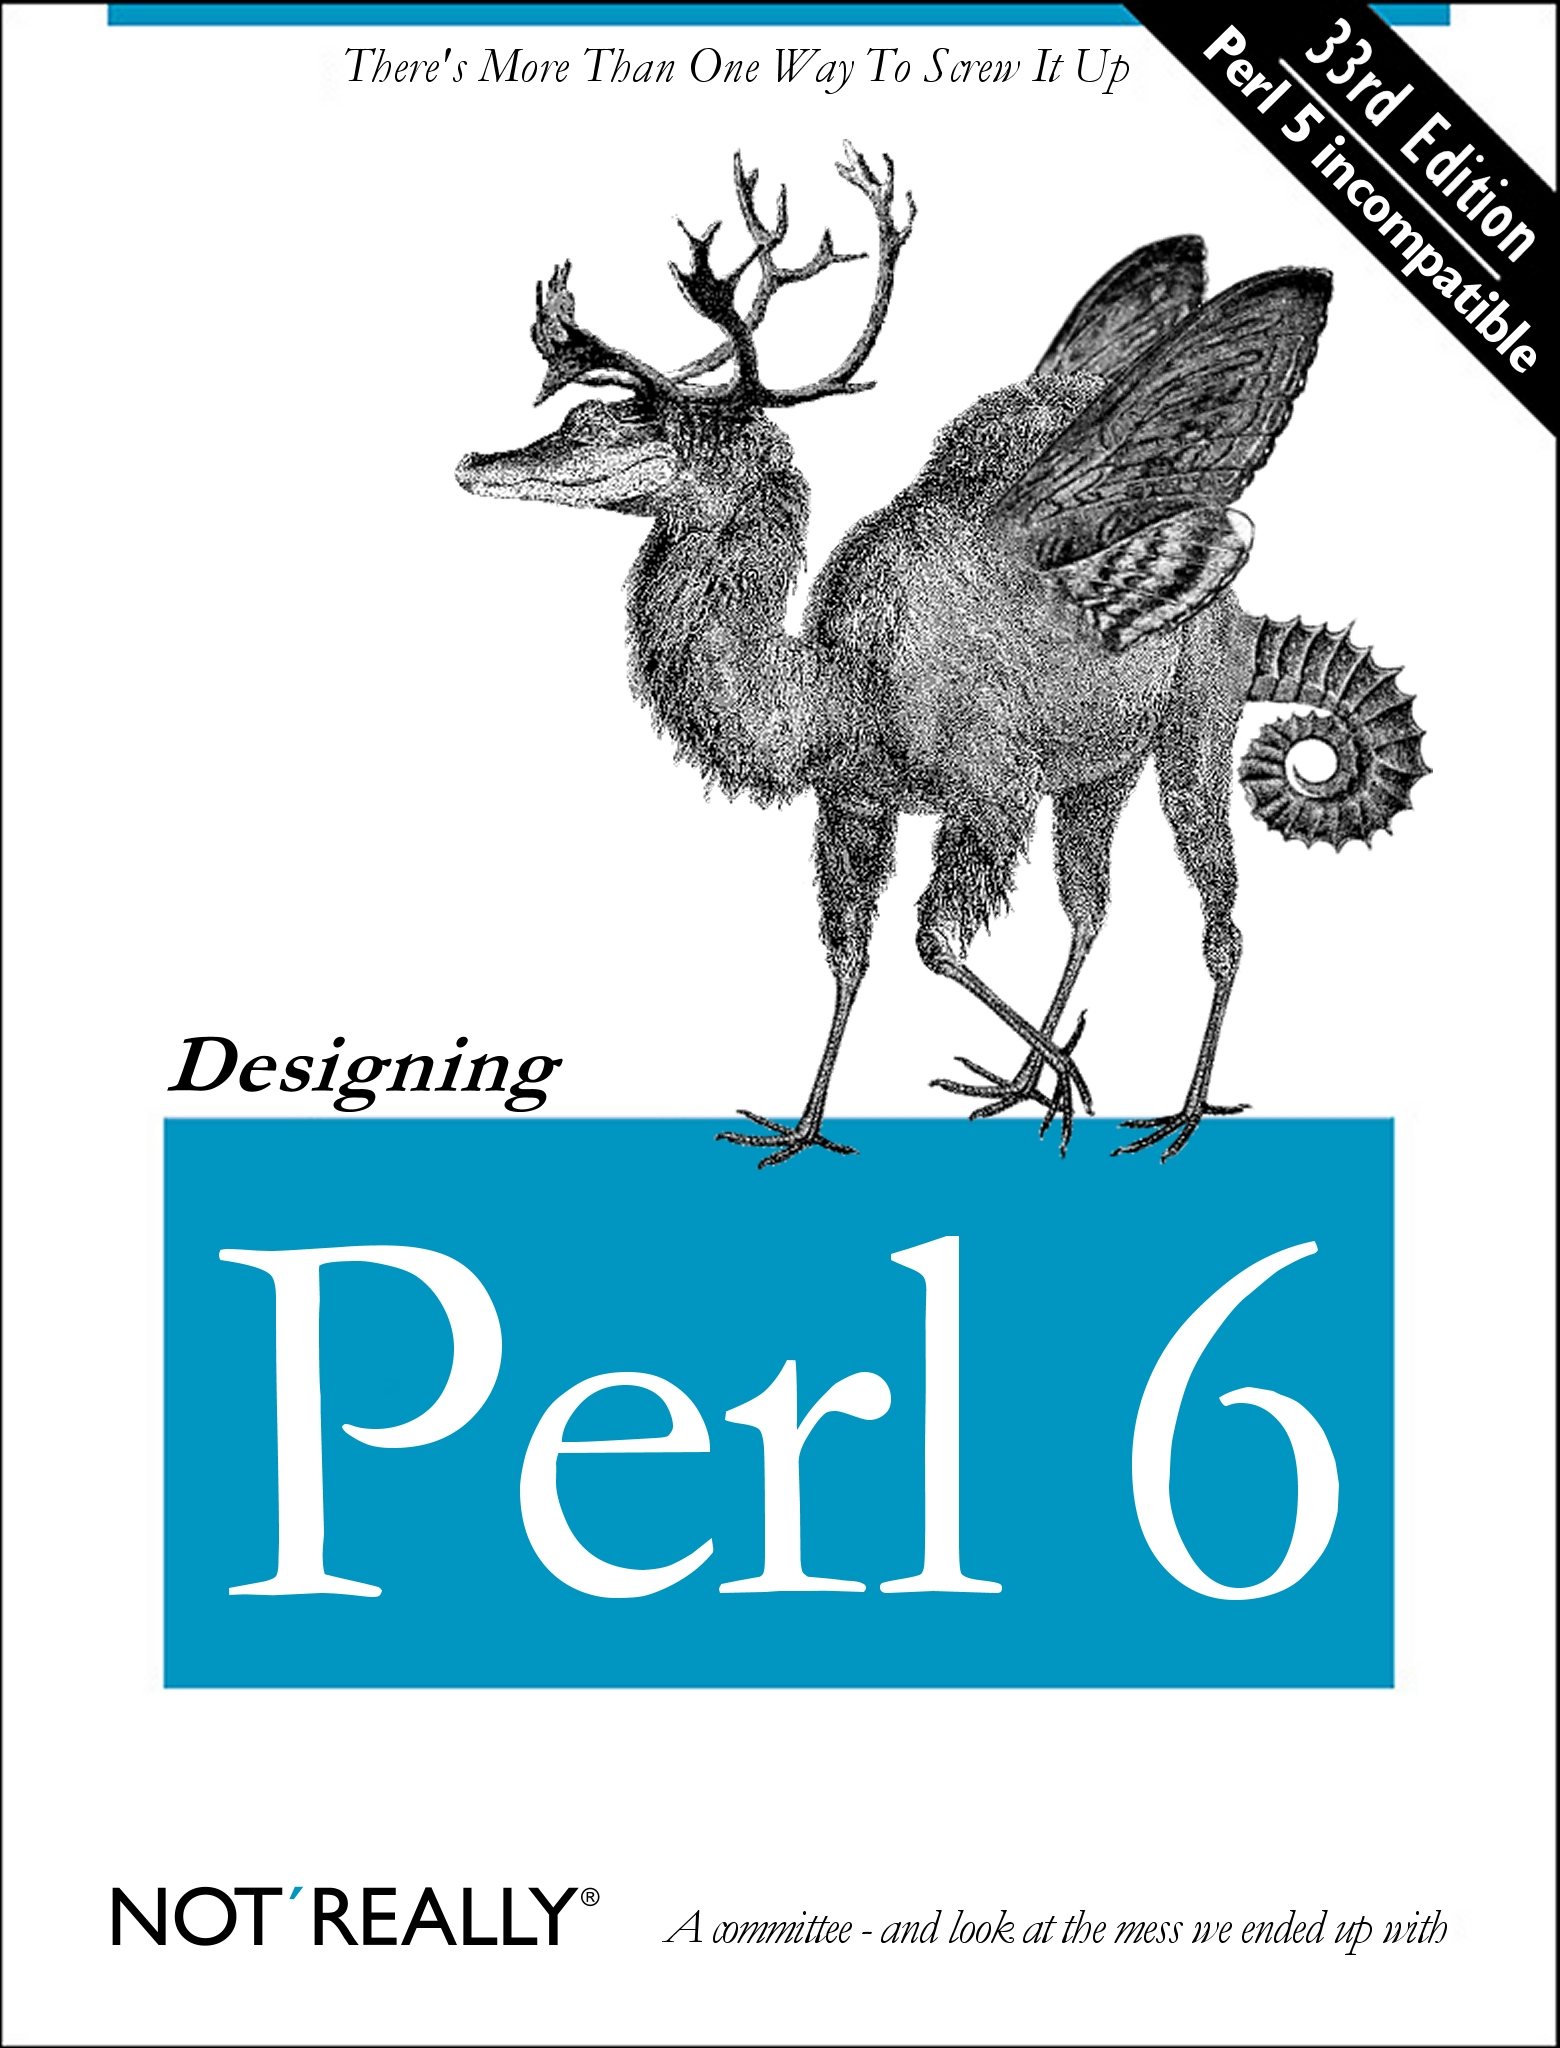 Perl 6 is now half as old as P...